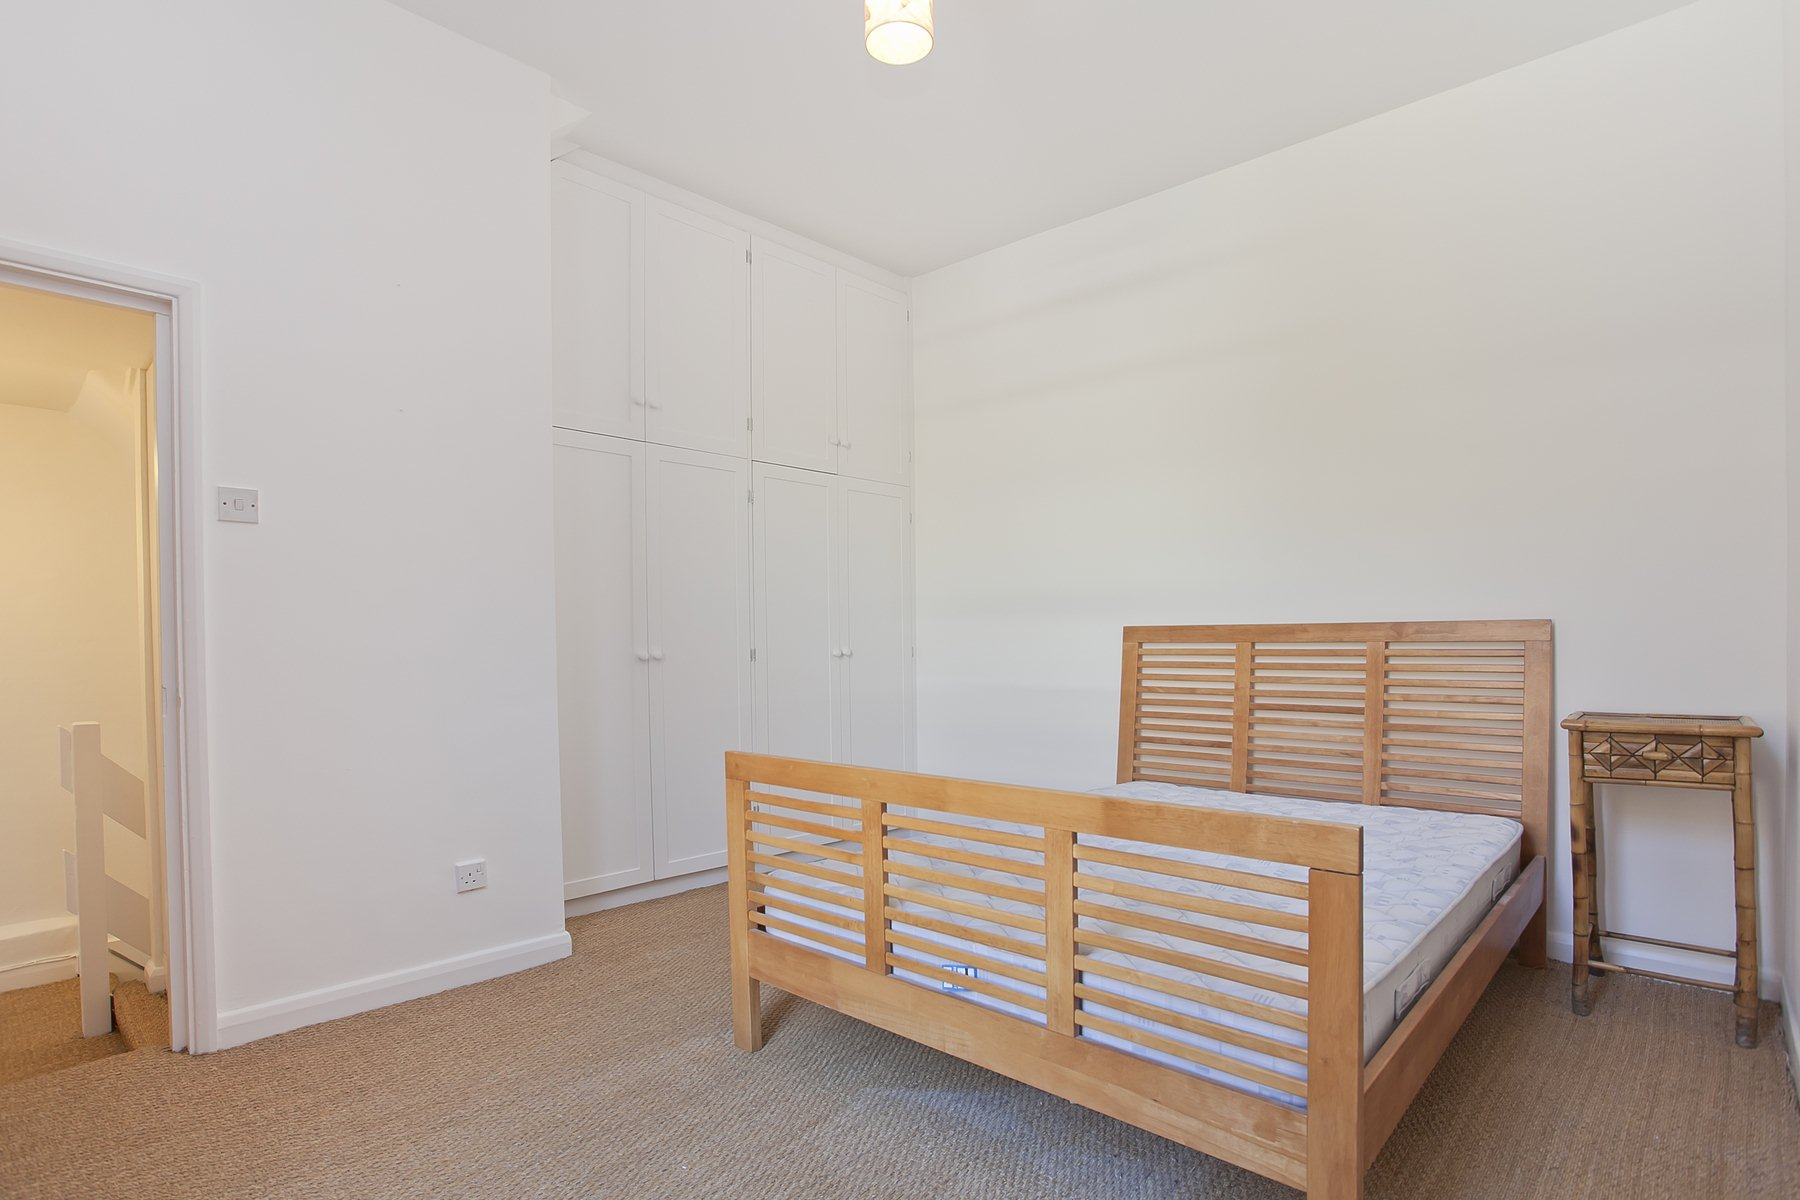 2 Bedroom Maisonette for Sale in Maida Vale, London, W9